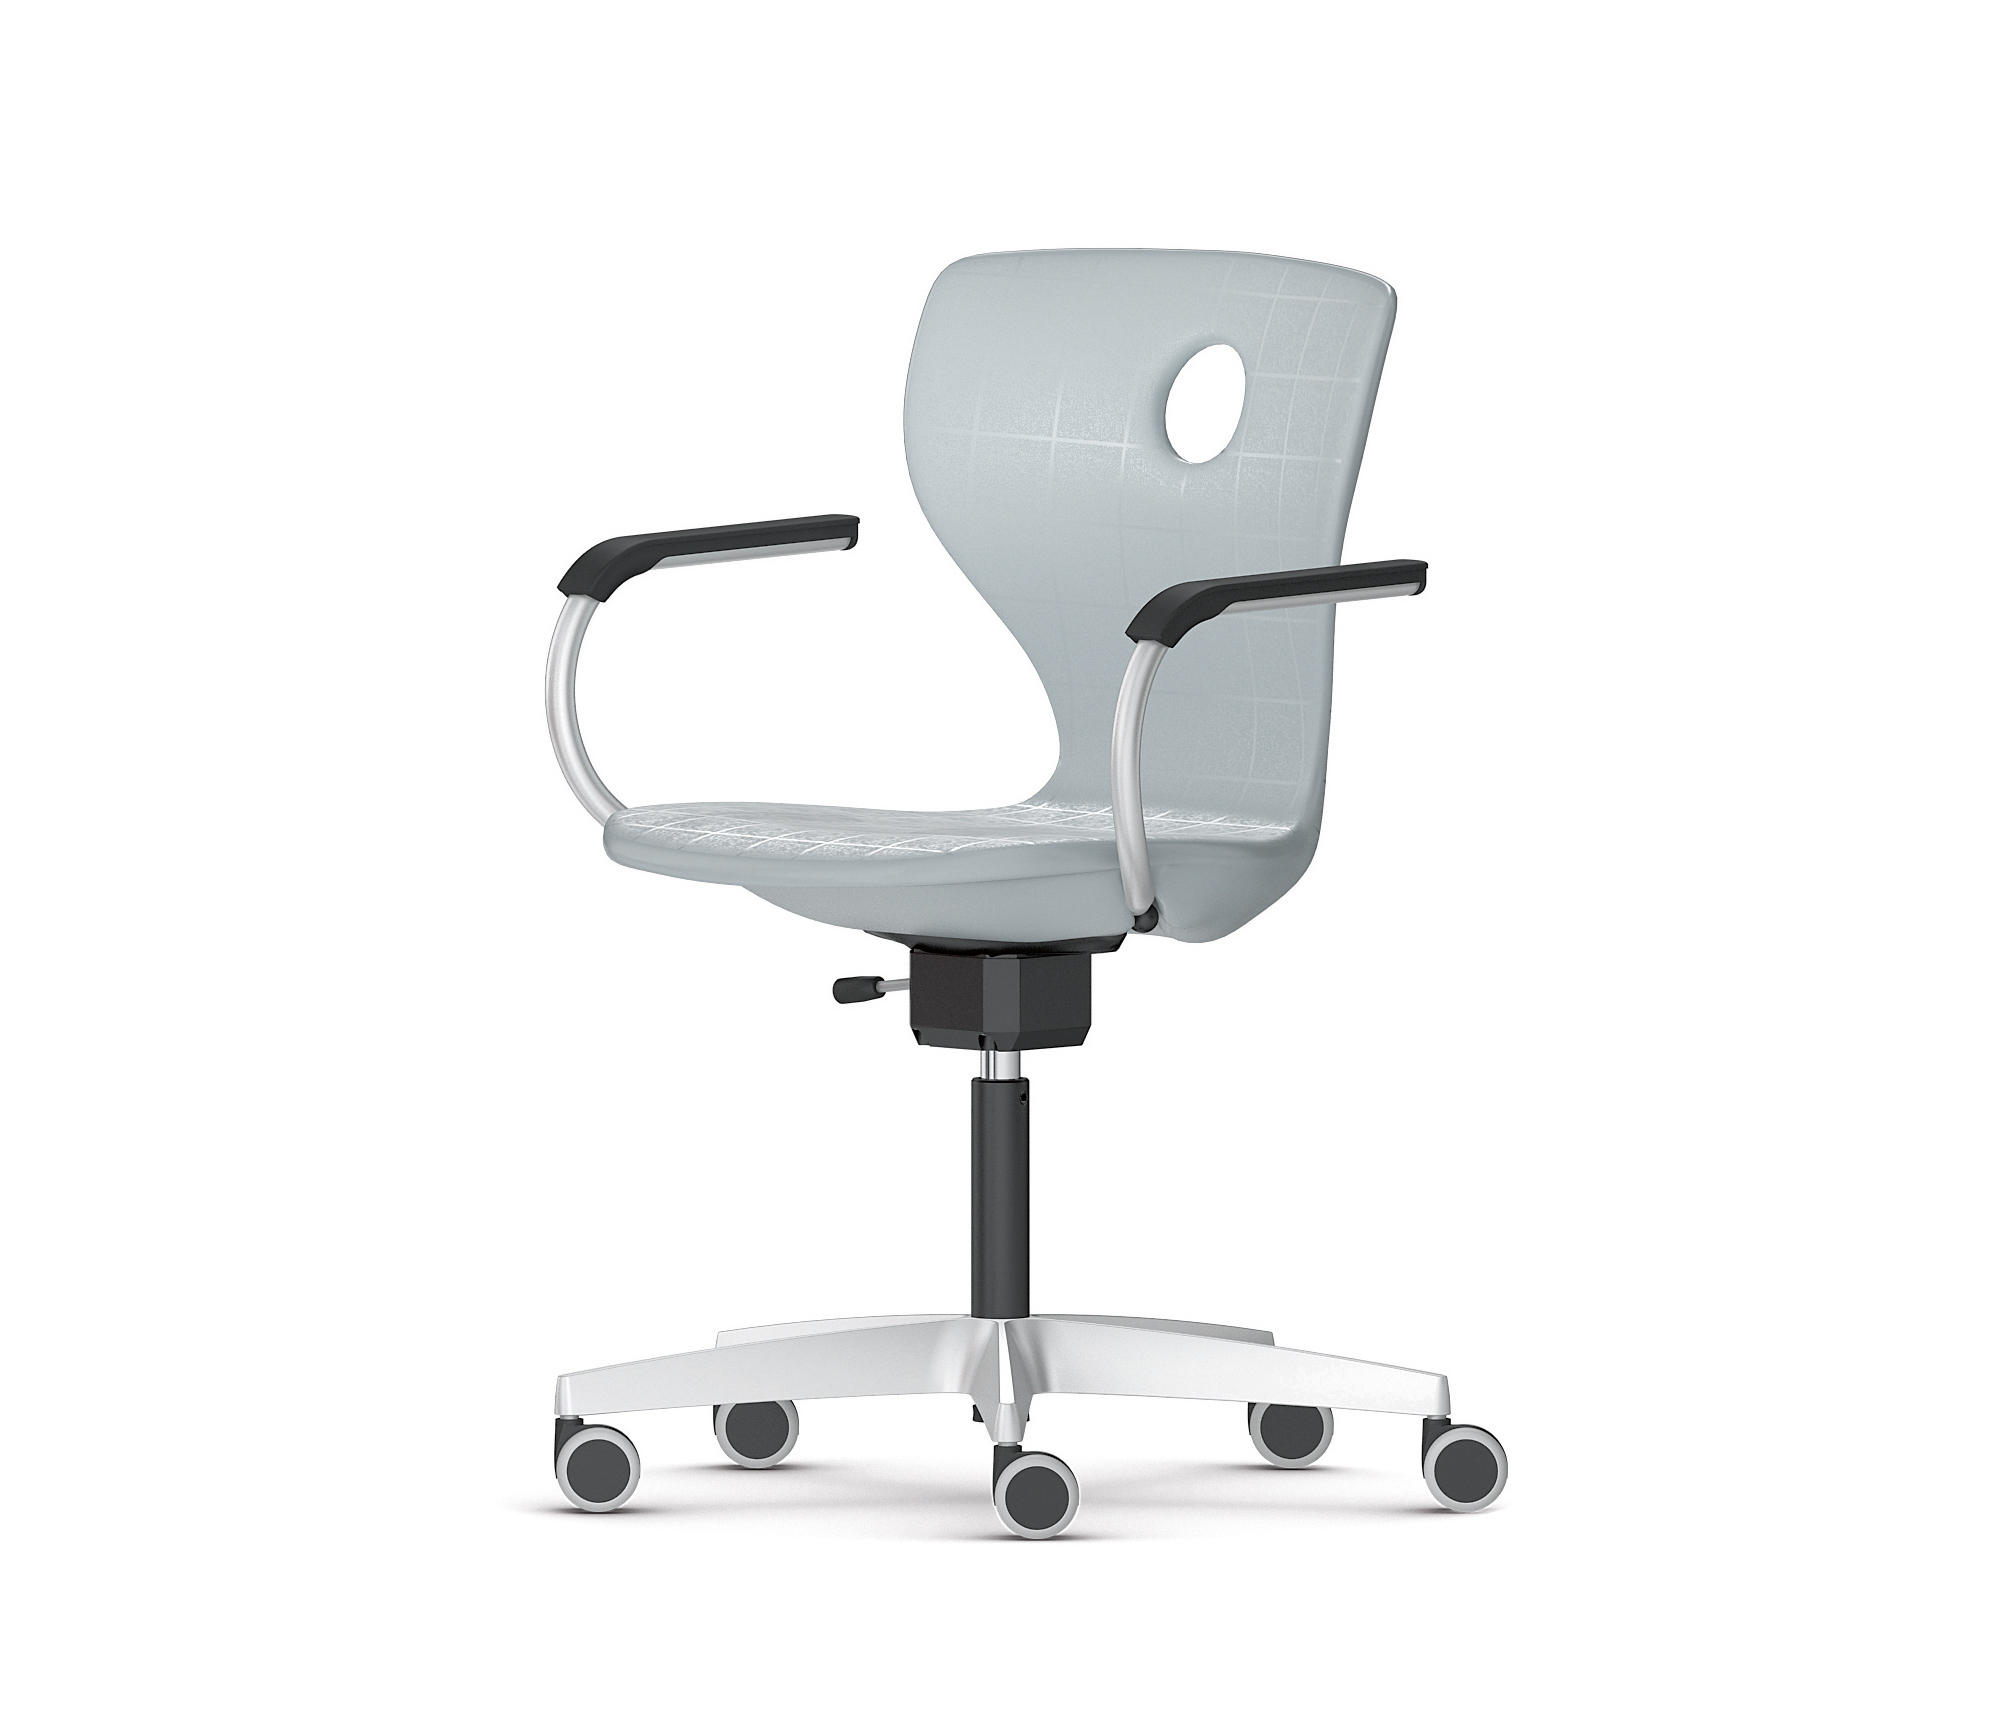 office chair vs task yilan design competition pantomove lupo chairs from architonic